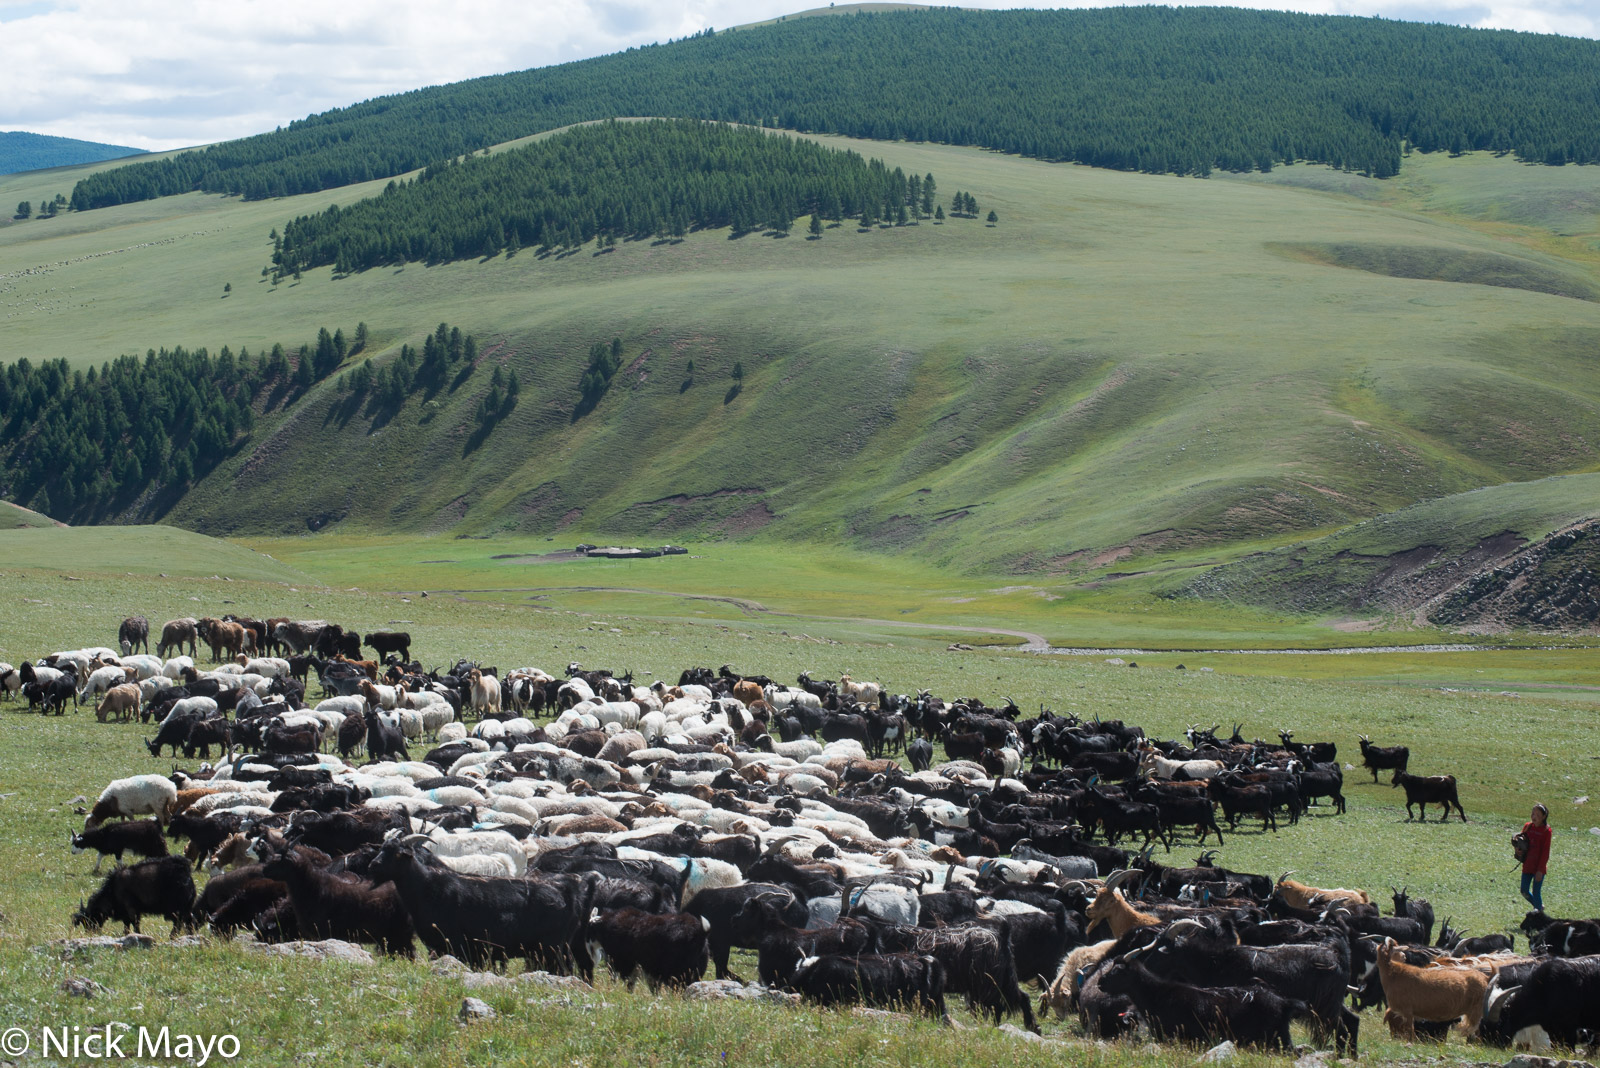 Darkhad, Goat, Herding, Khovsgol, Mongolia, Sheep, photo